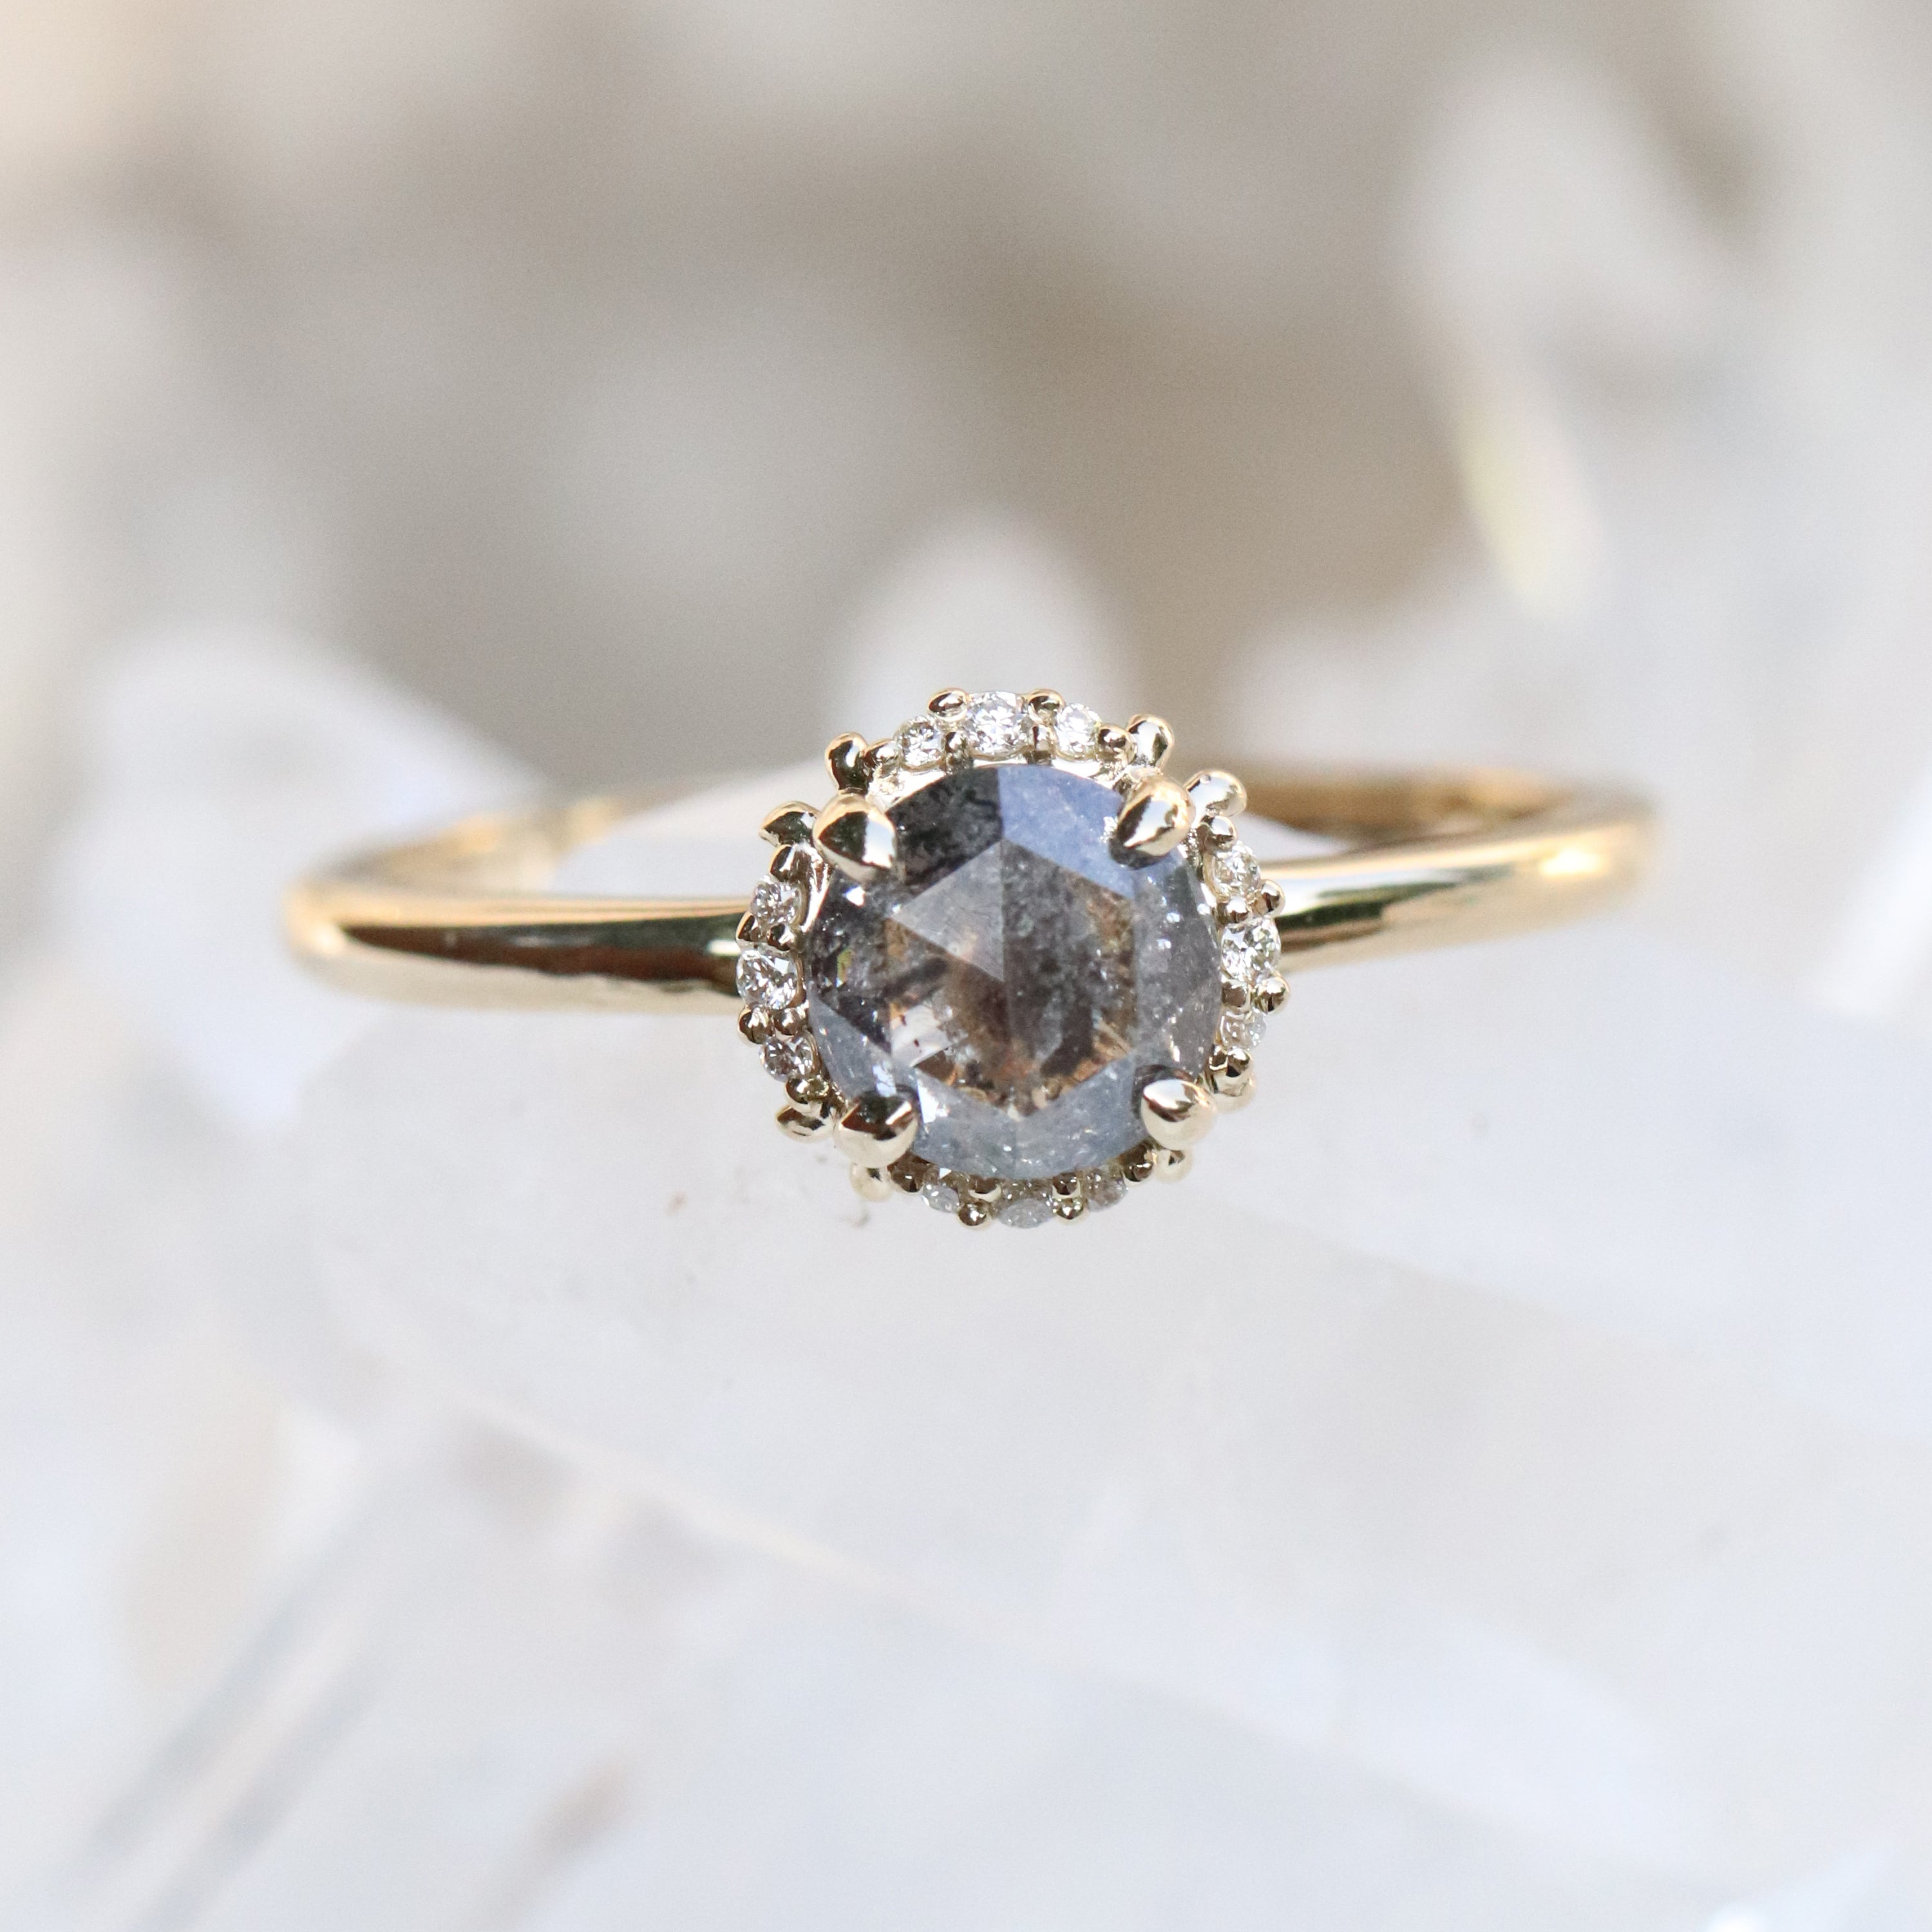 Astrid Ring with a Celetial Diamond in 14k Yellow Gold - Ready to Size and Ship - Salt & Pepper Celestial Diamond Engagement Rings and Wedding Bands  by Midwinter Co.